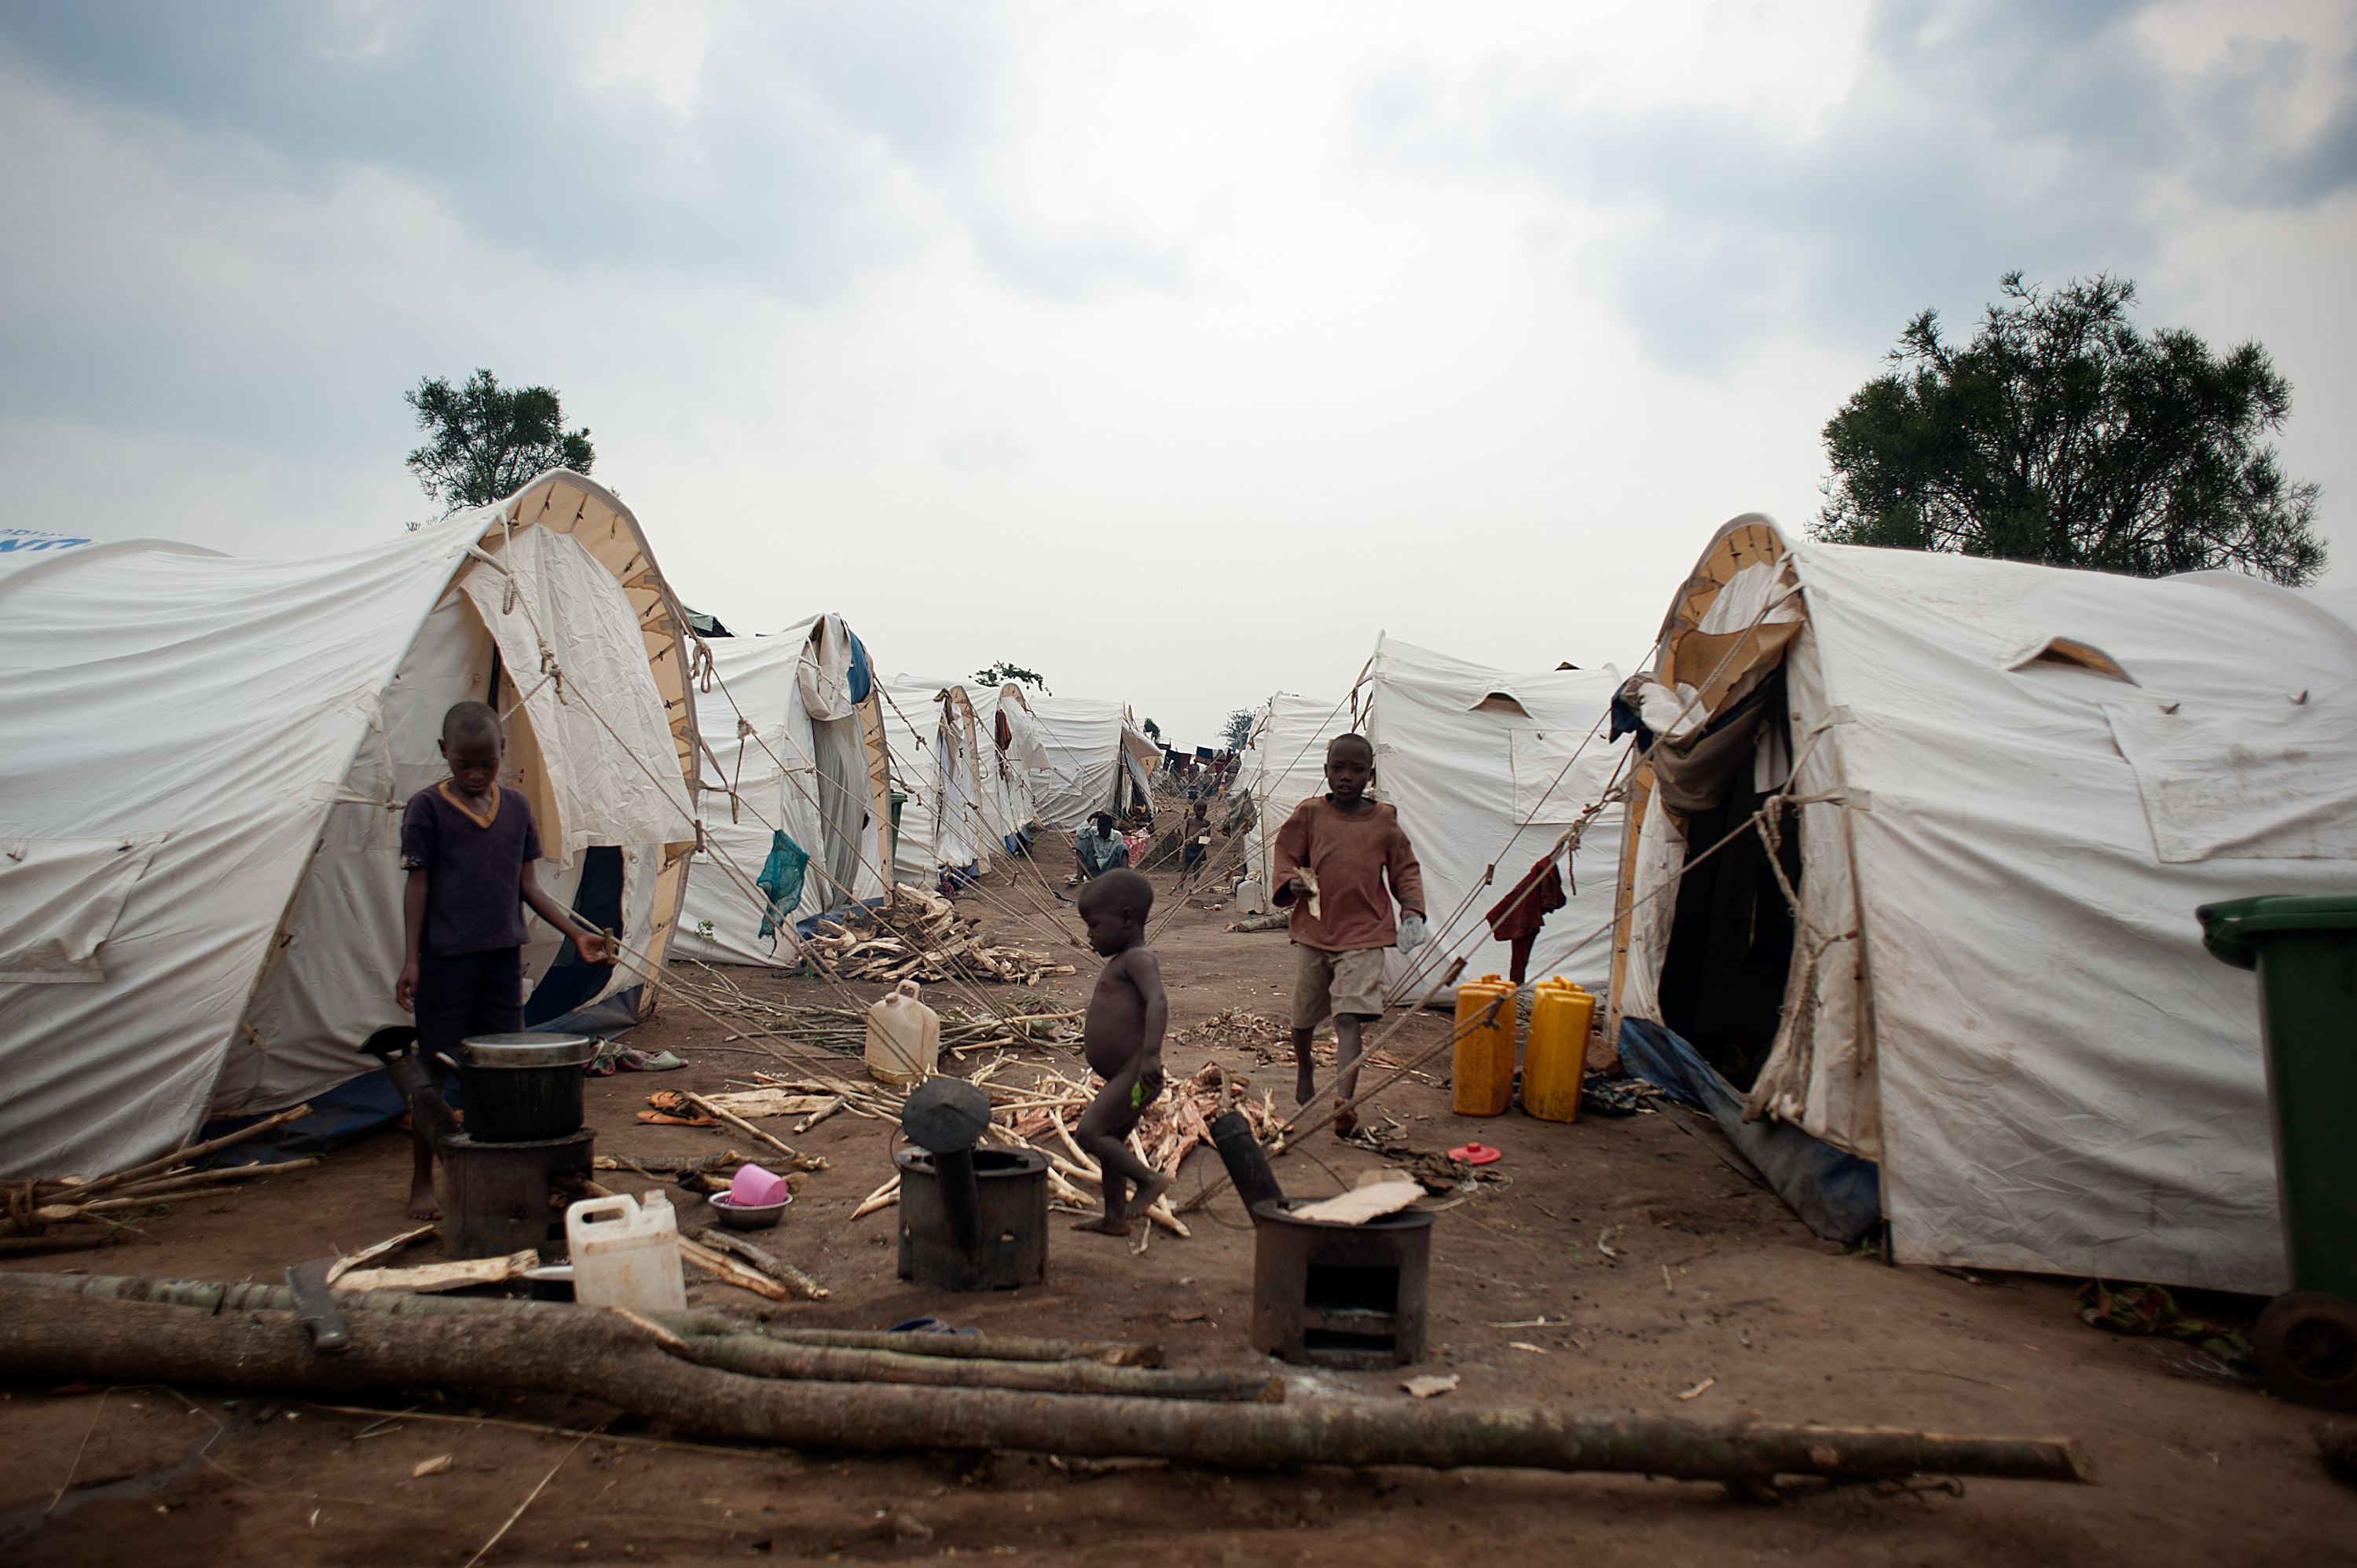 A view between tents within the Mahama refugee camp. Families live extremely close together, and cooking must be done outside.